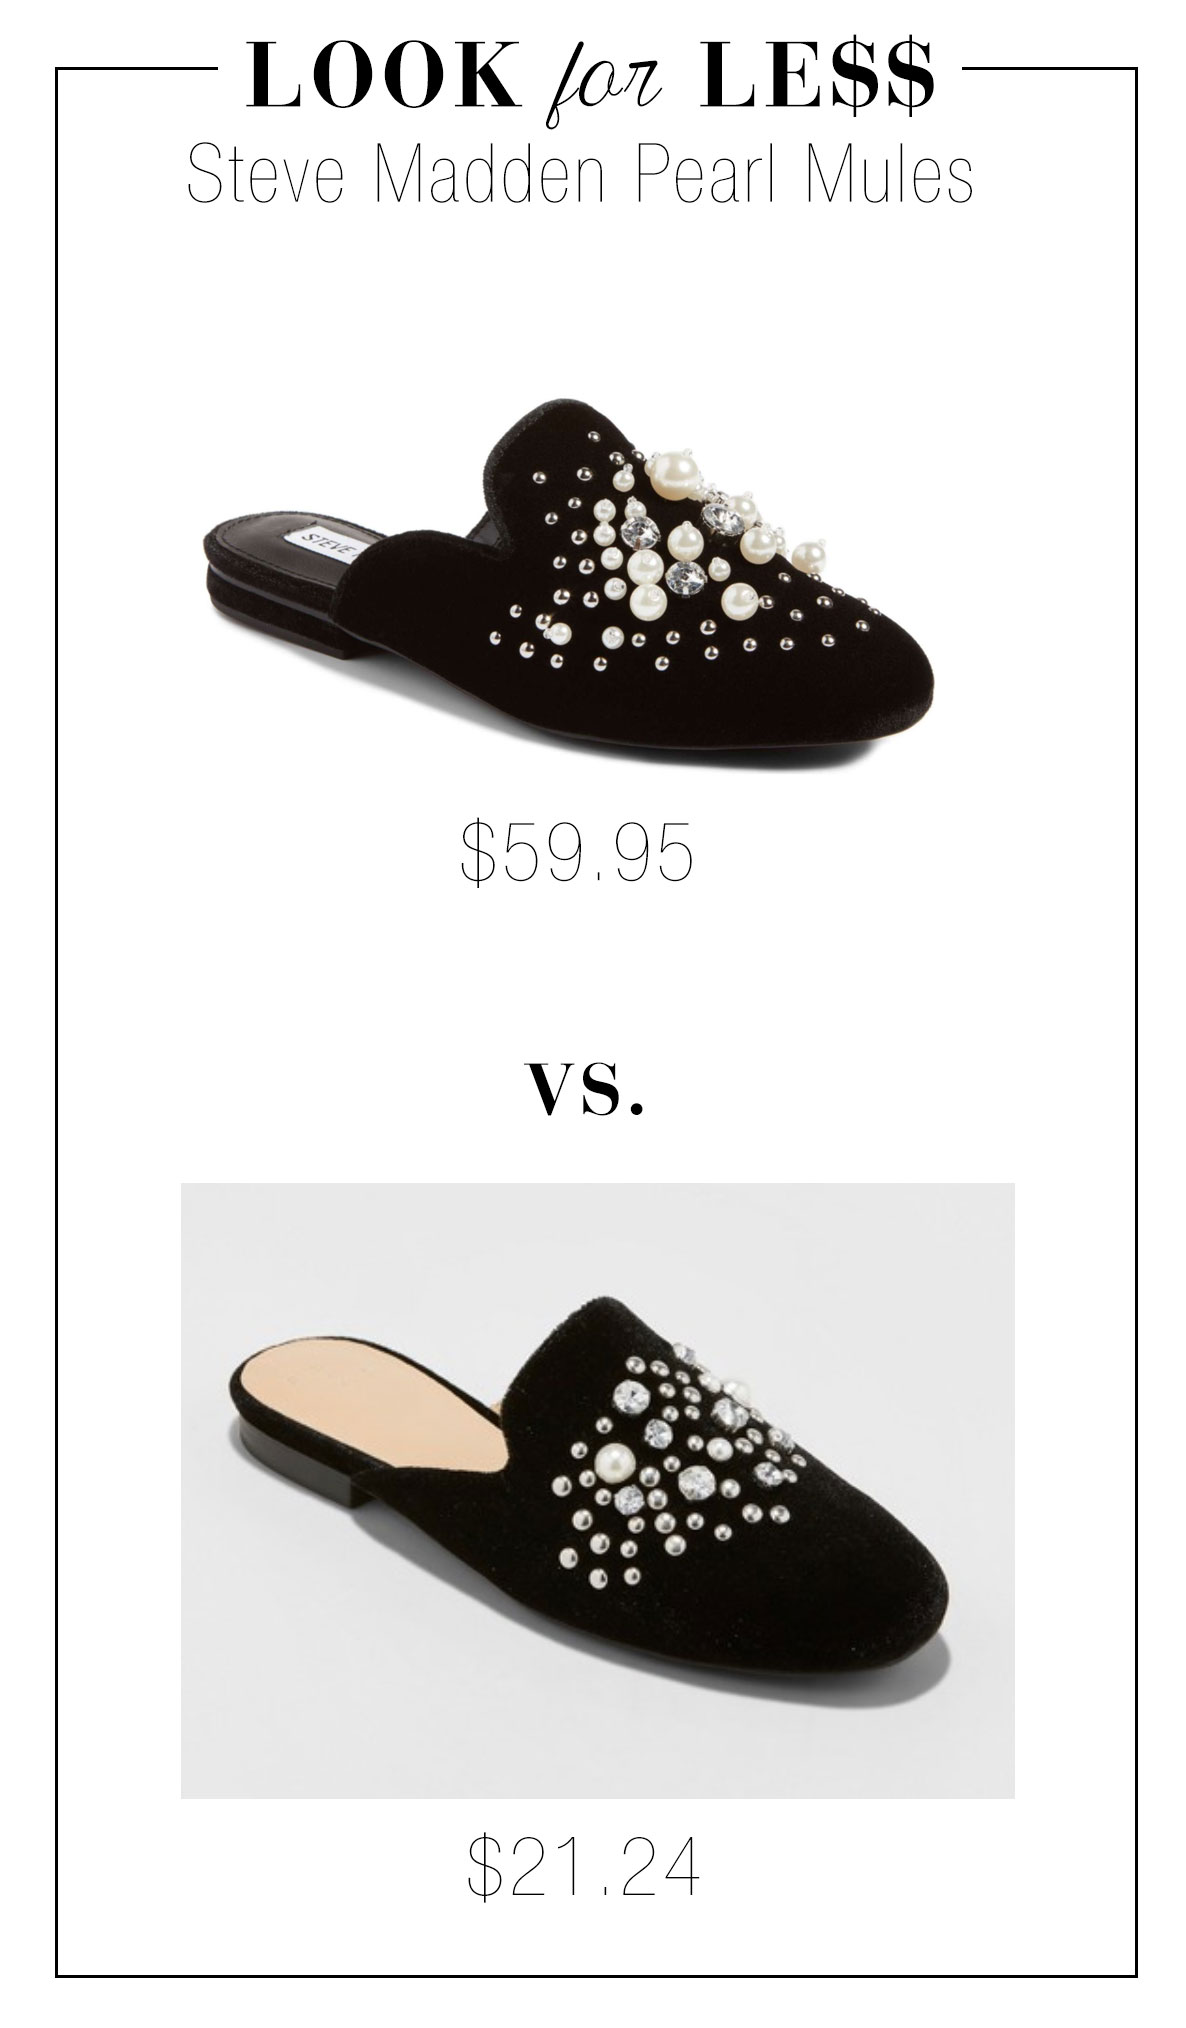 Look for Less: Steve Madden Pearl Mules